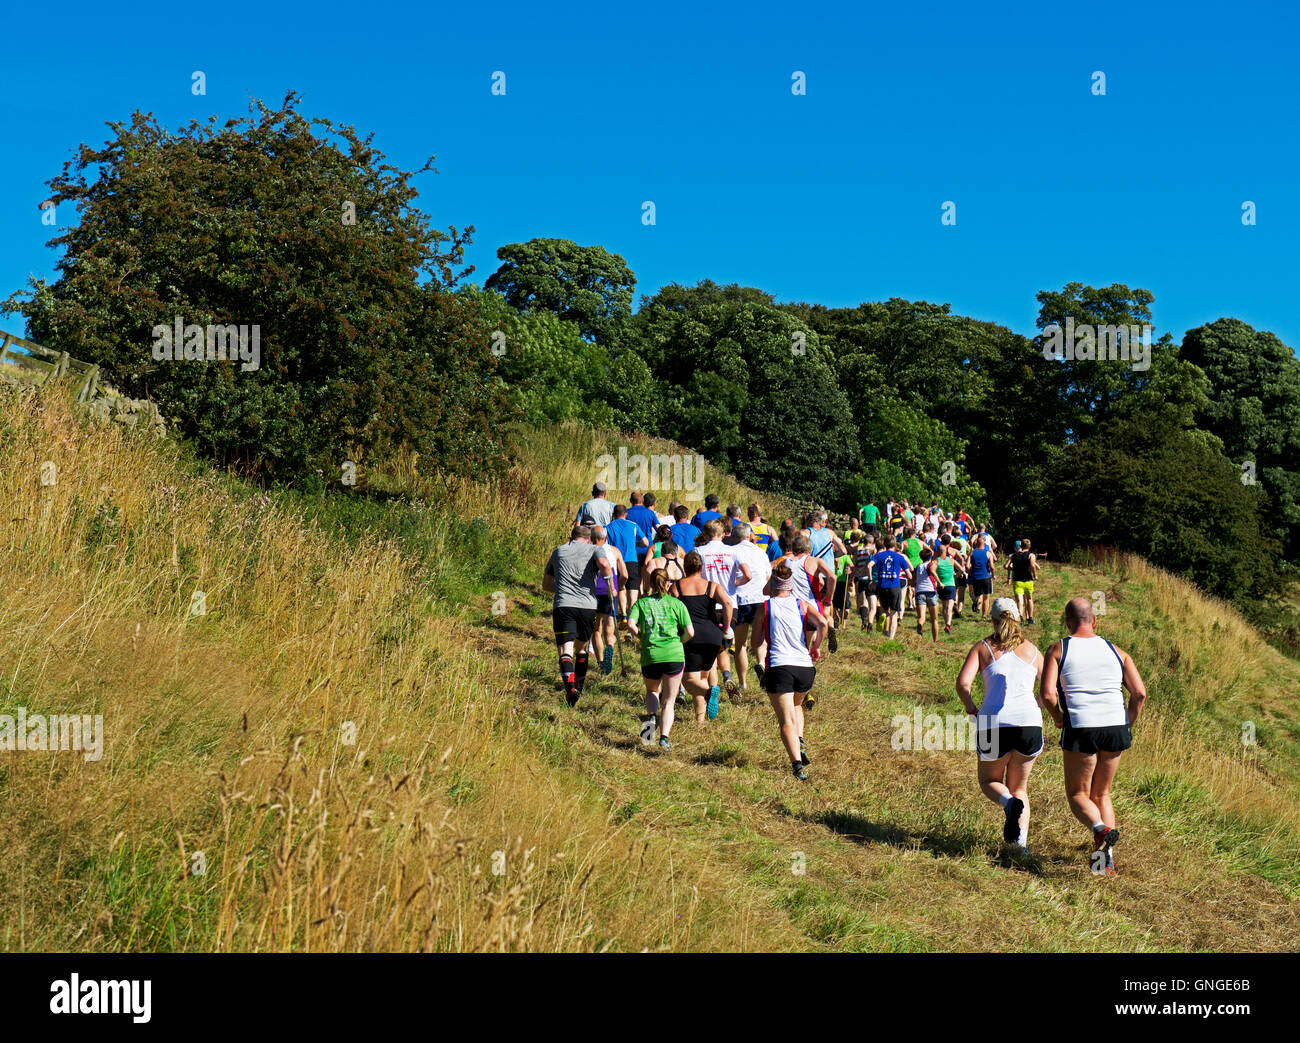 Fell runners at Reeth Show, Swaledale, North Yorkshire, England UK - Stock Image